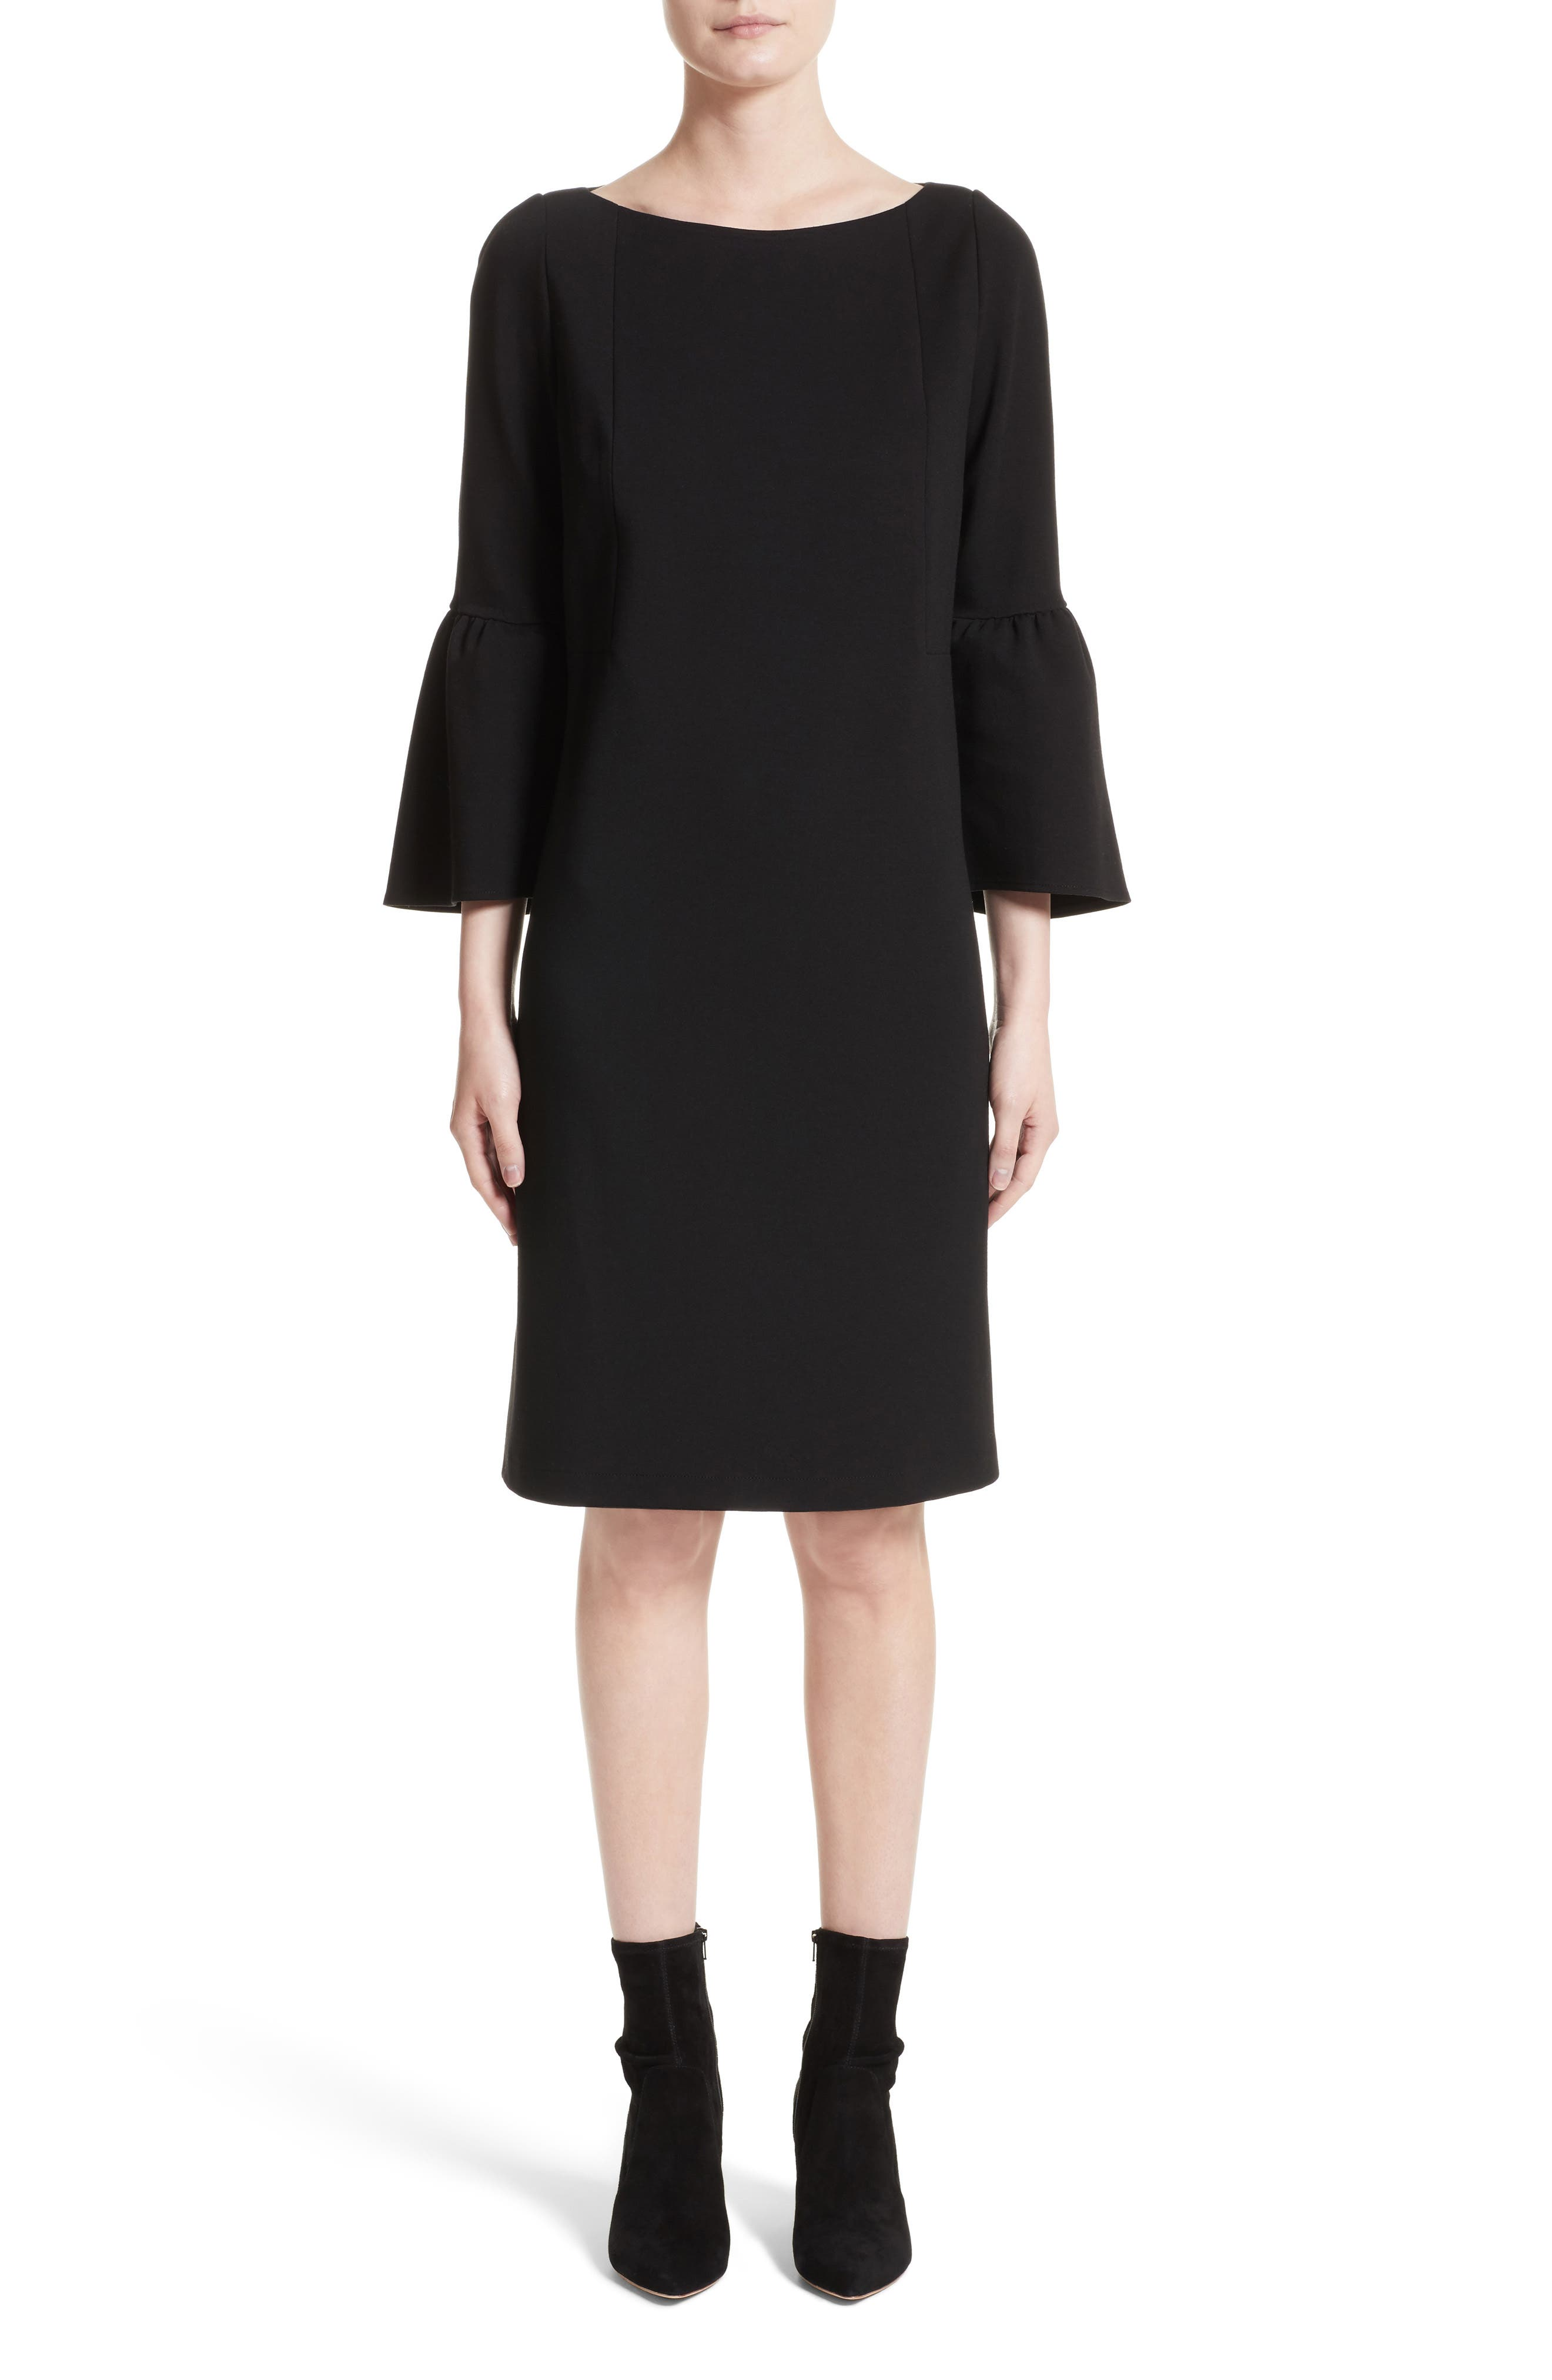 LAFAYETTE 148 NEW YORK Marissa Punto Milano Dress